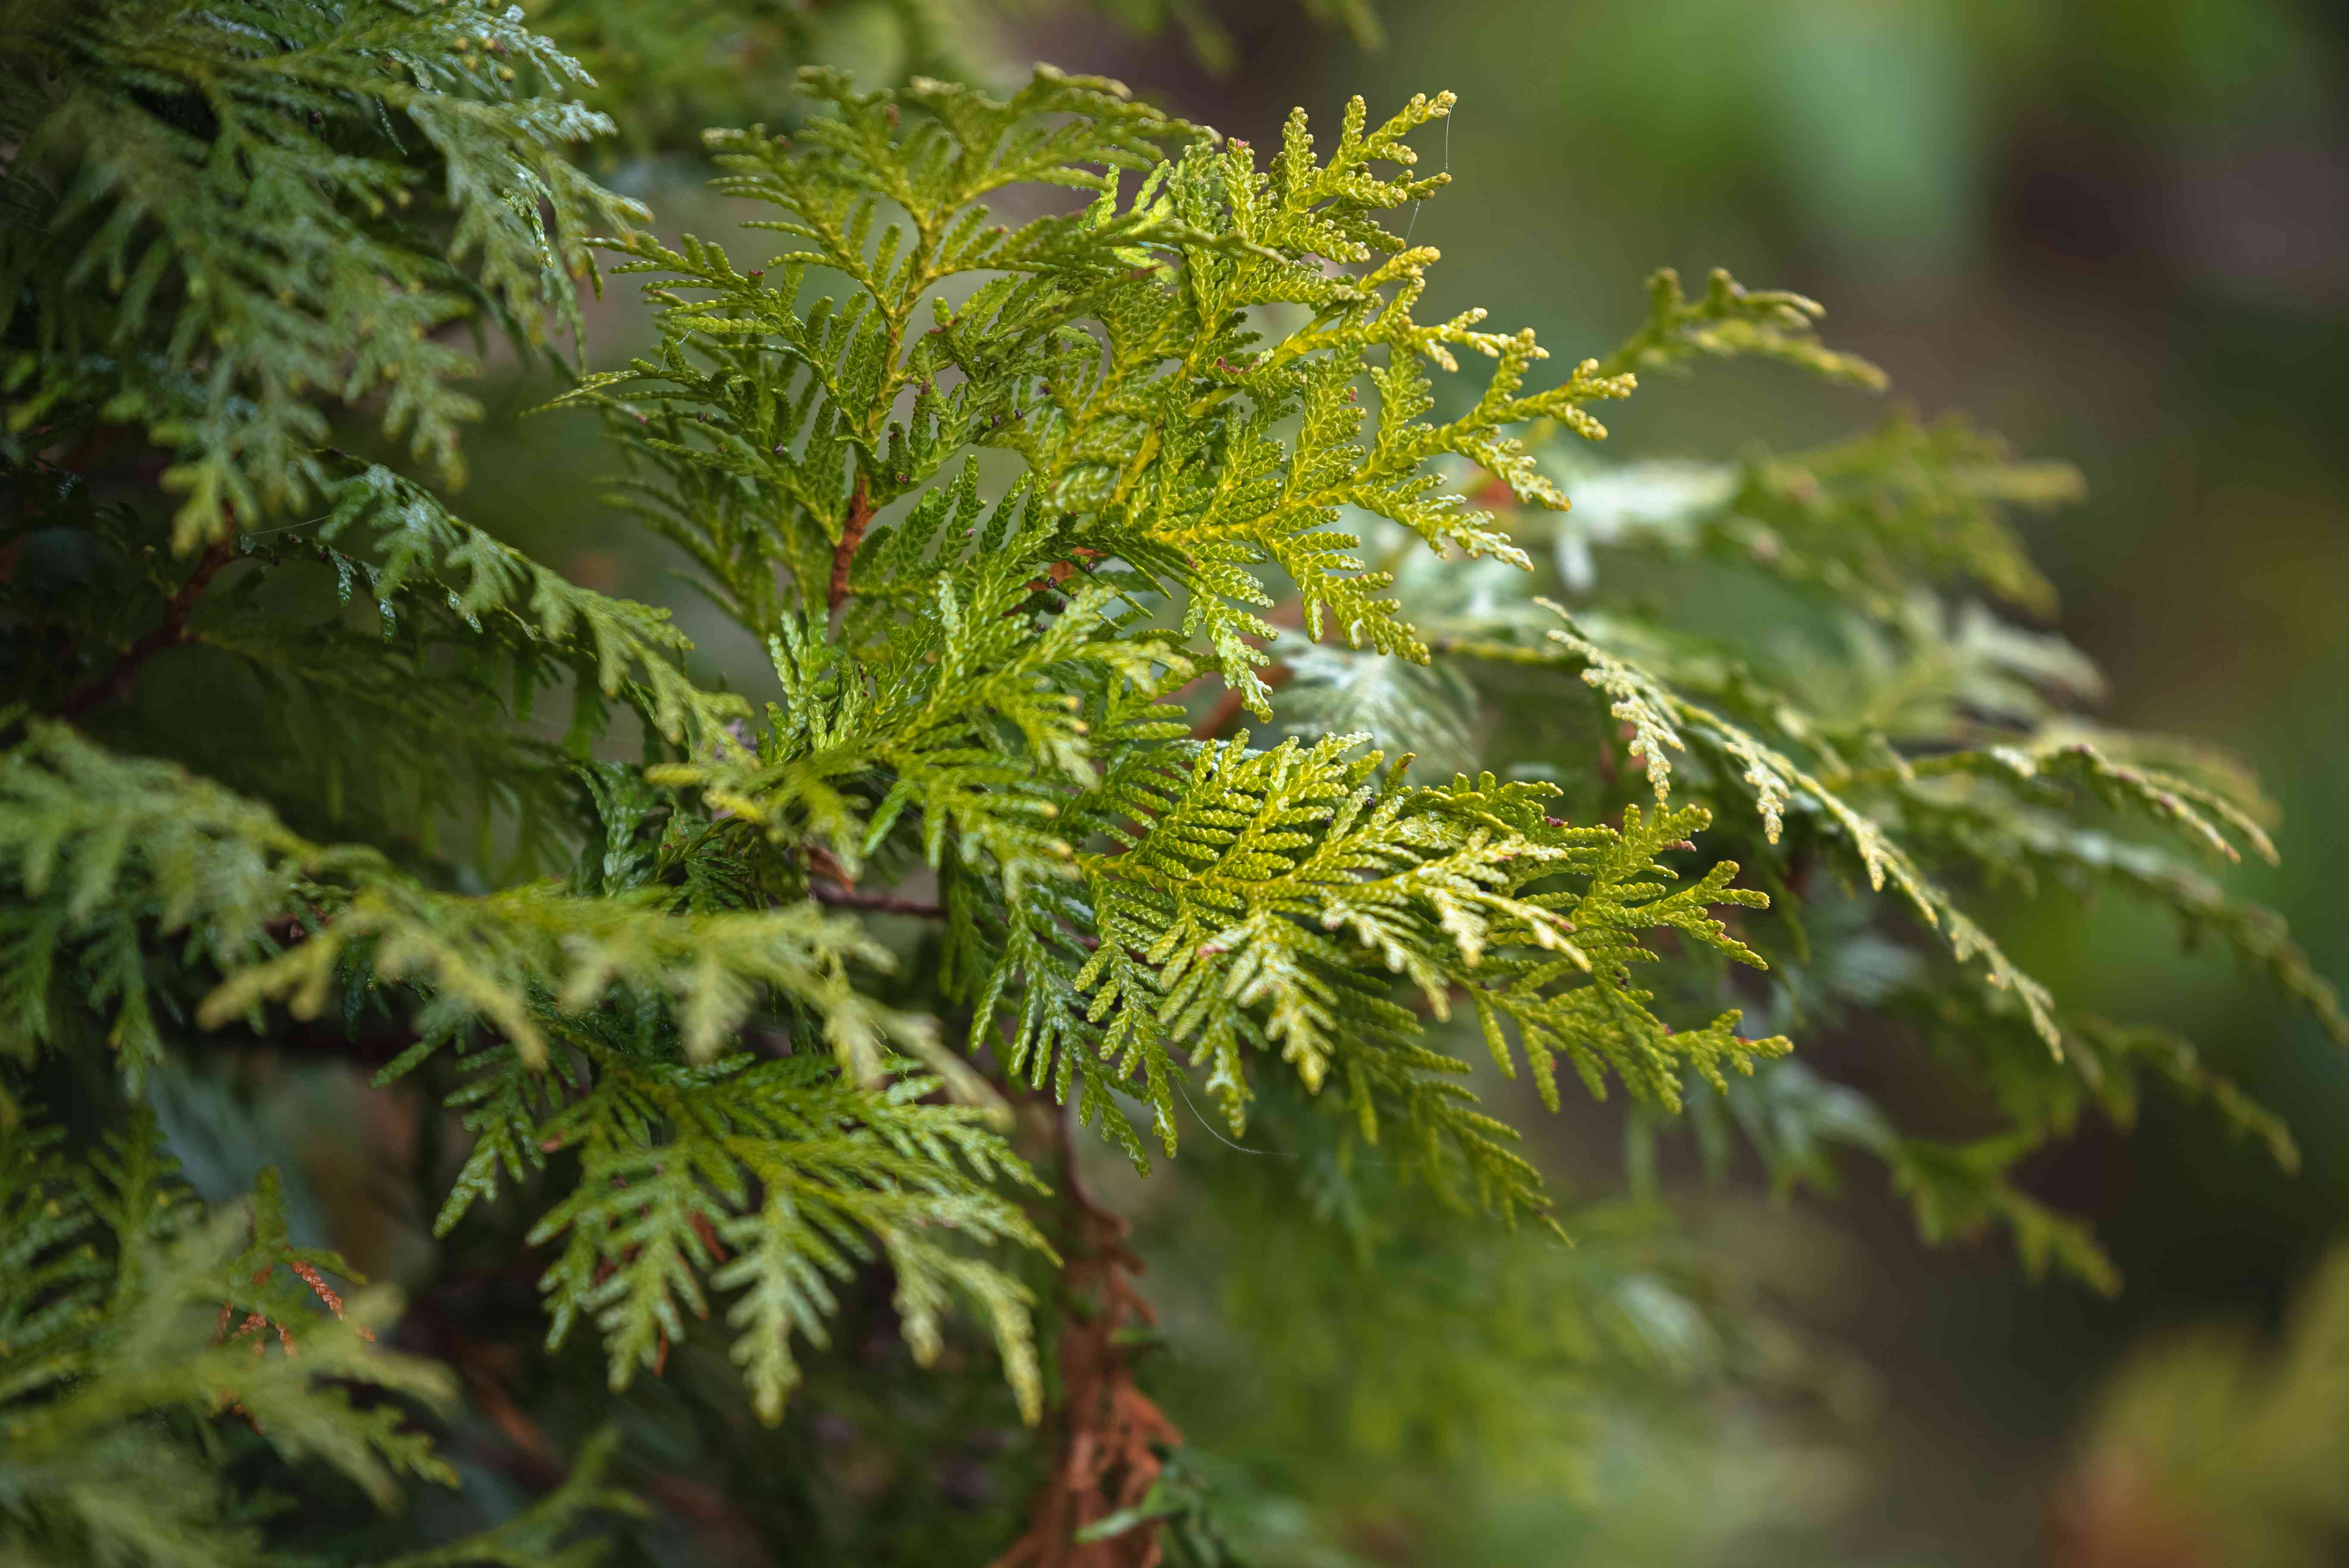 Emerald green arborvitae tree branch and glossy leaves closeup